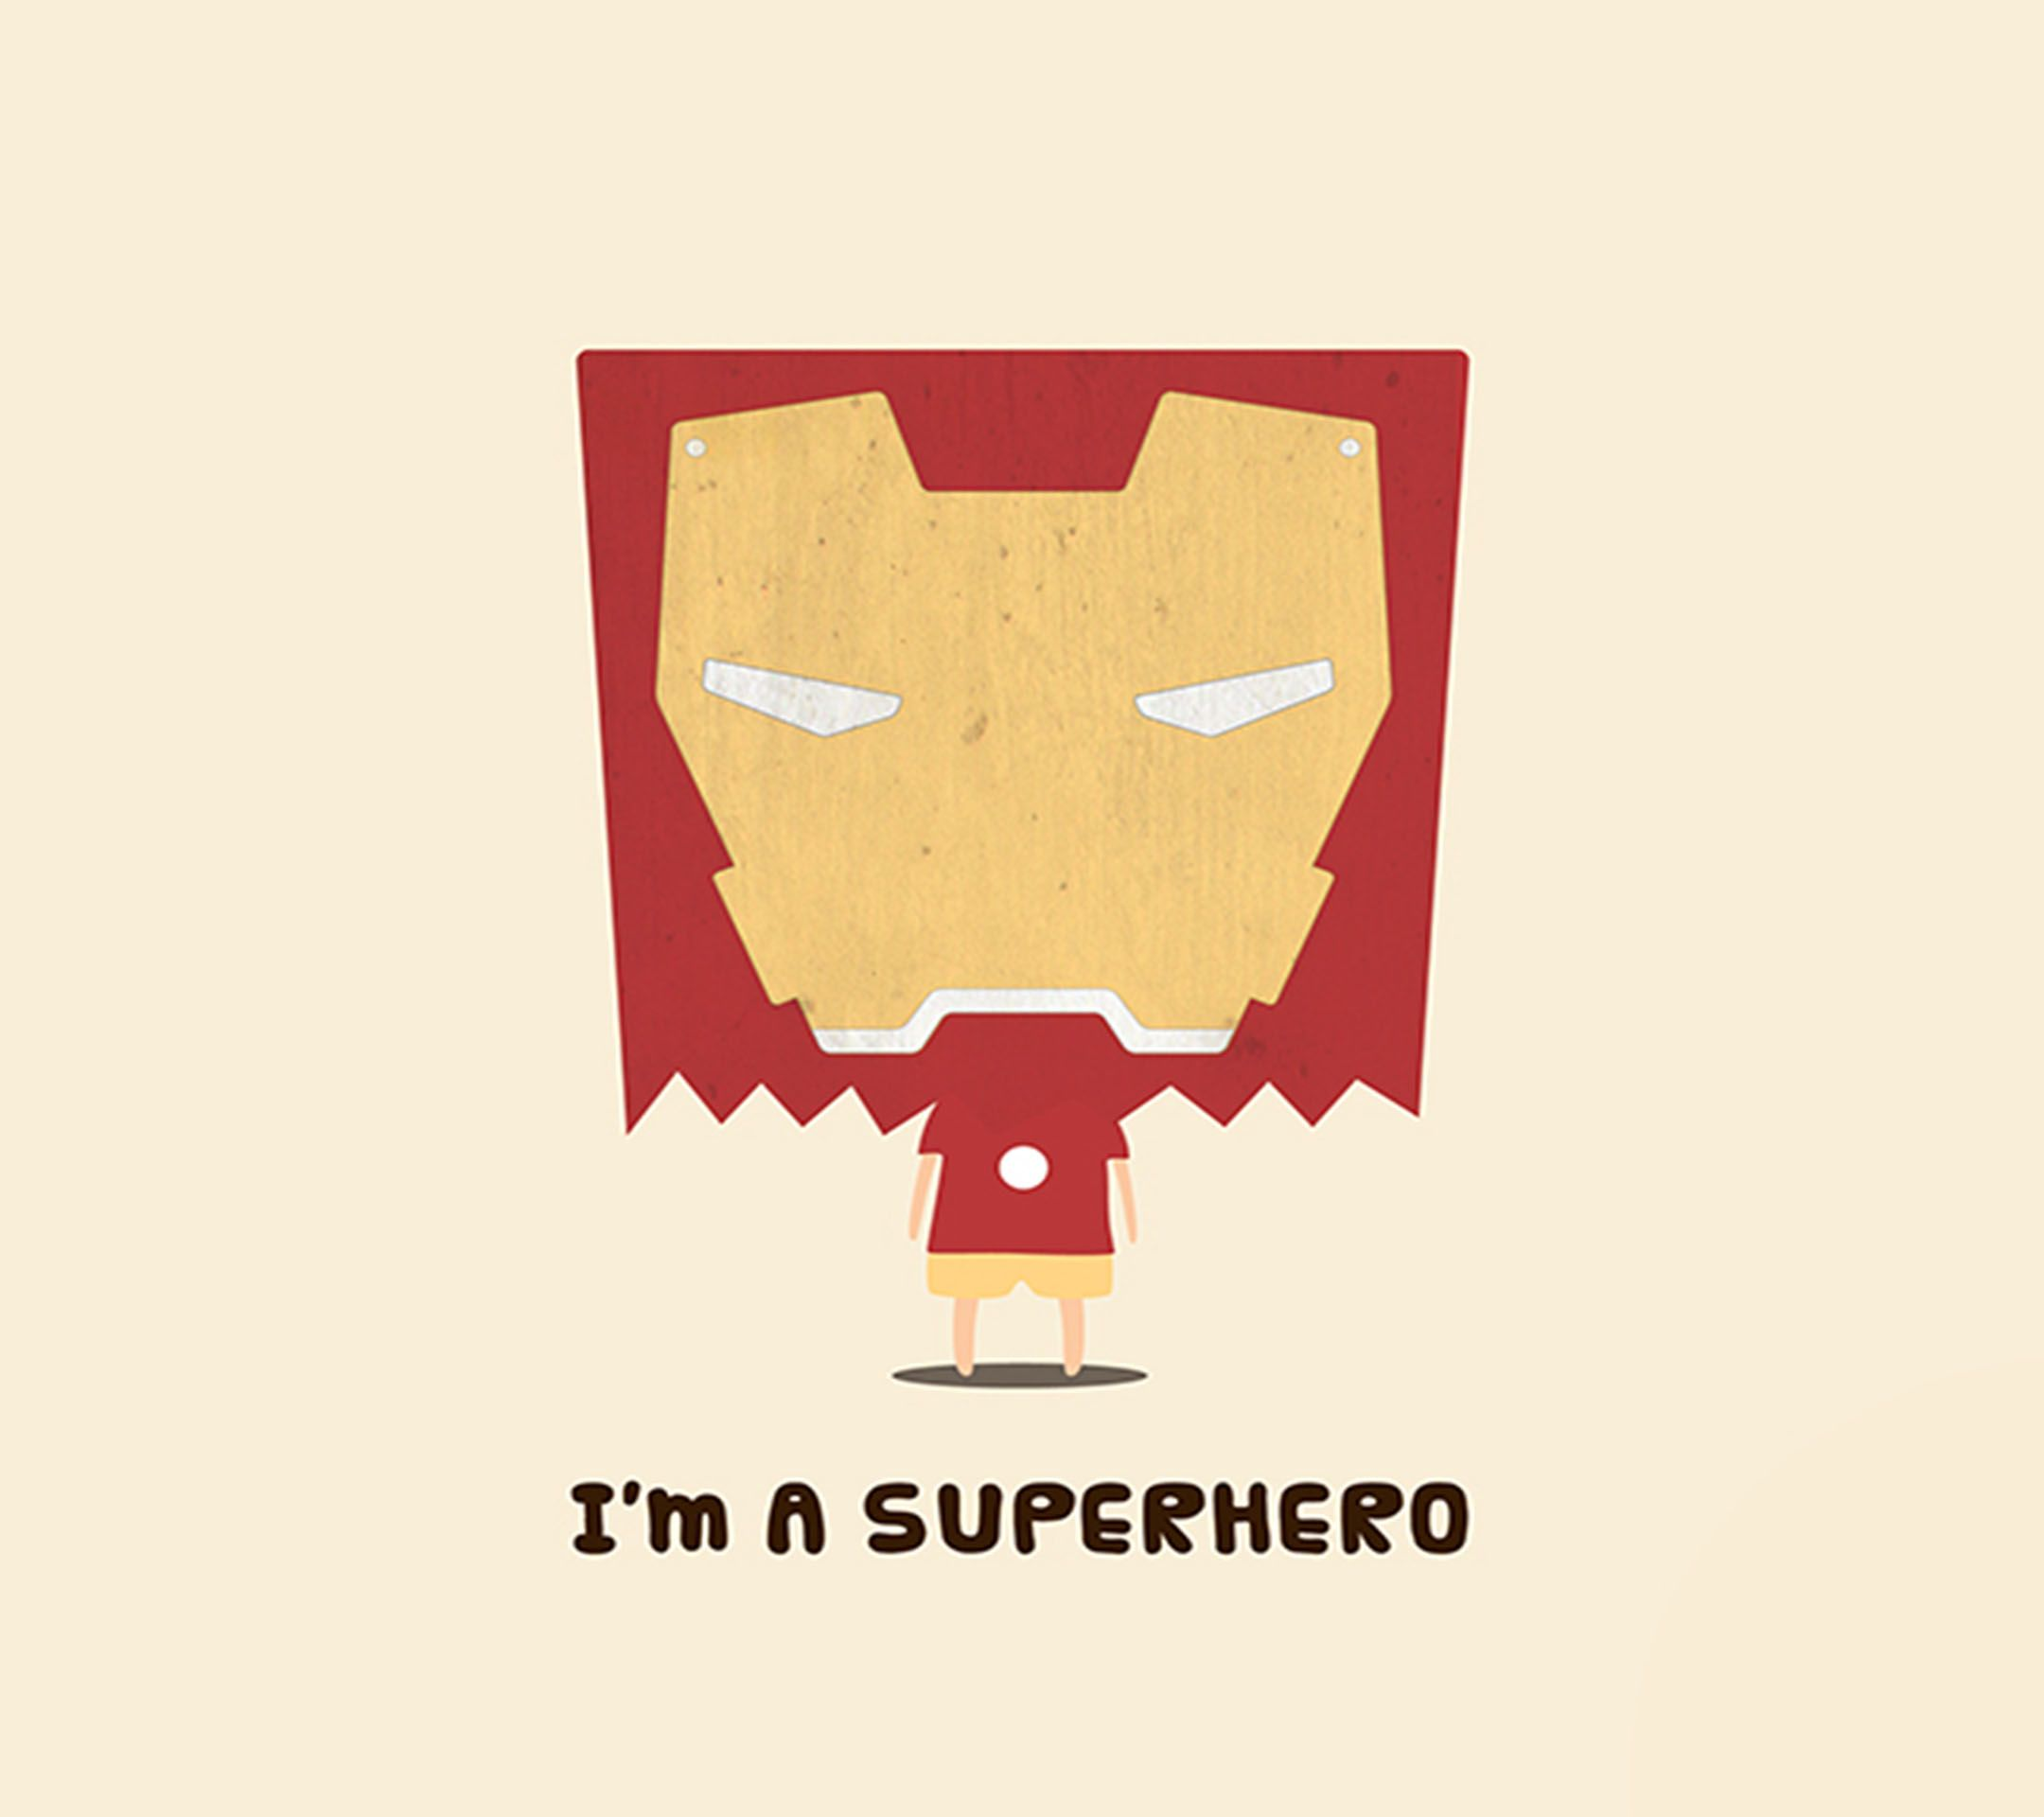 Im A Superhero Cute Ironman Android Wallpaper At Mobile9 Other